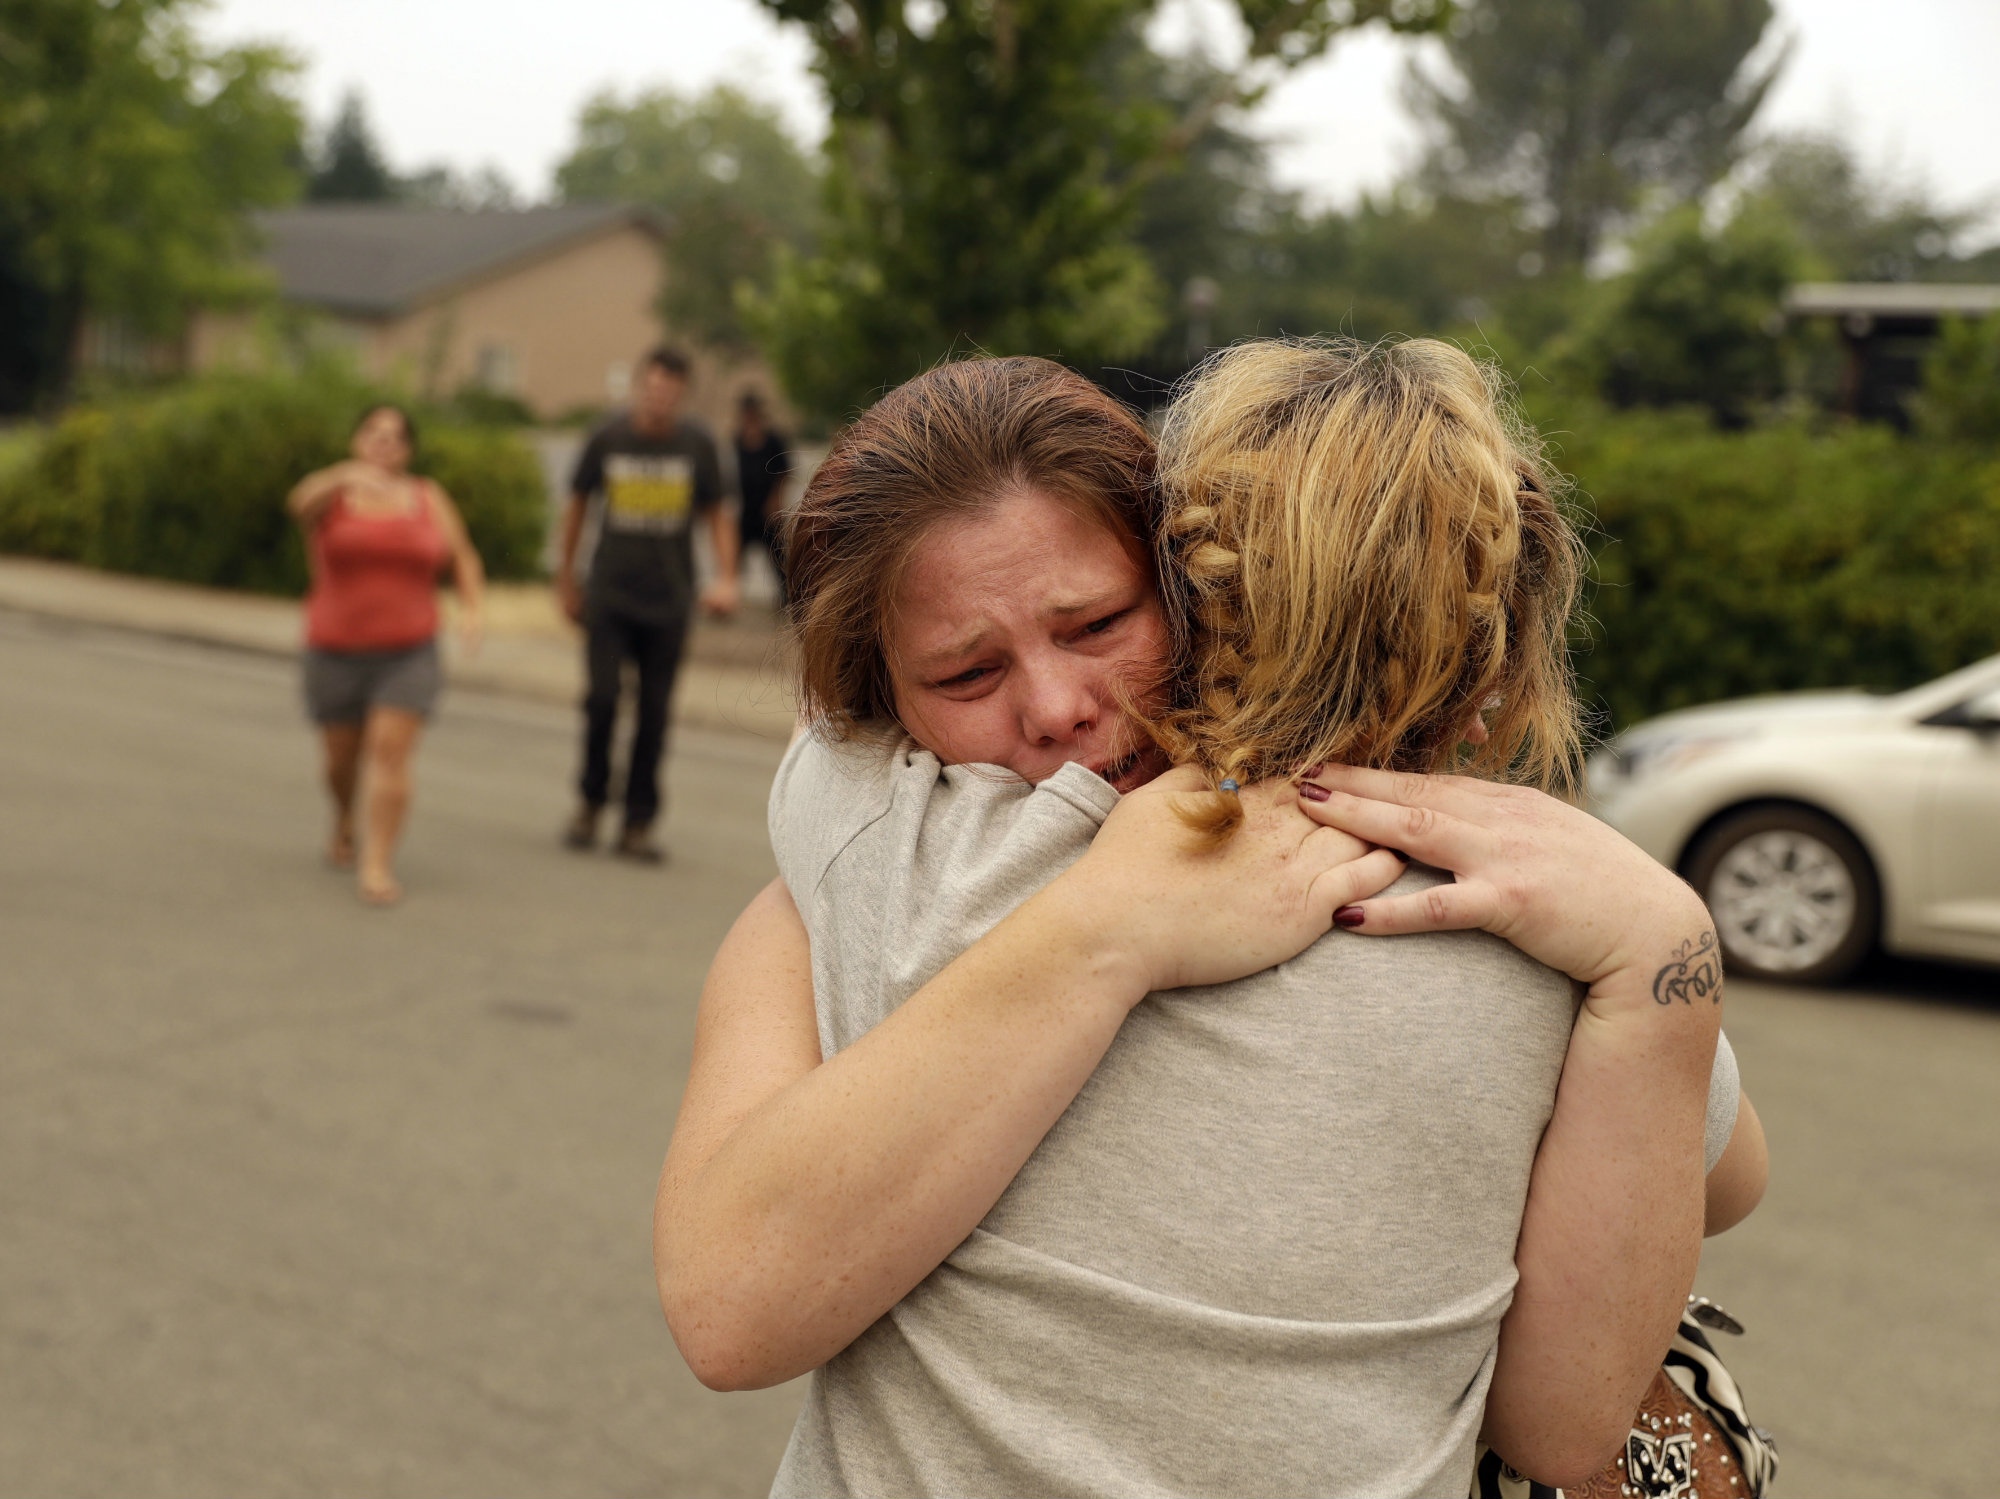 Carla Bledsoe, facing camera, hugs her sister Sherry outside of the sheriff's office after hearing news that Sherry's children, James and Emily, and grandmother, Melody Bledsoe, were killed in a wildfire Saturday, July 28, 2018, in Redding, Calif.